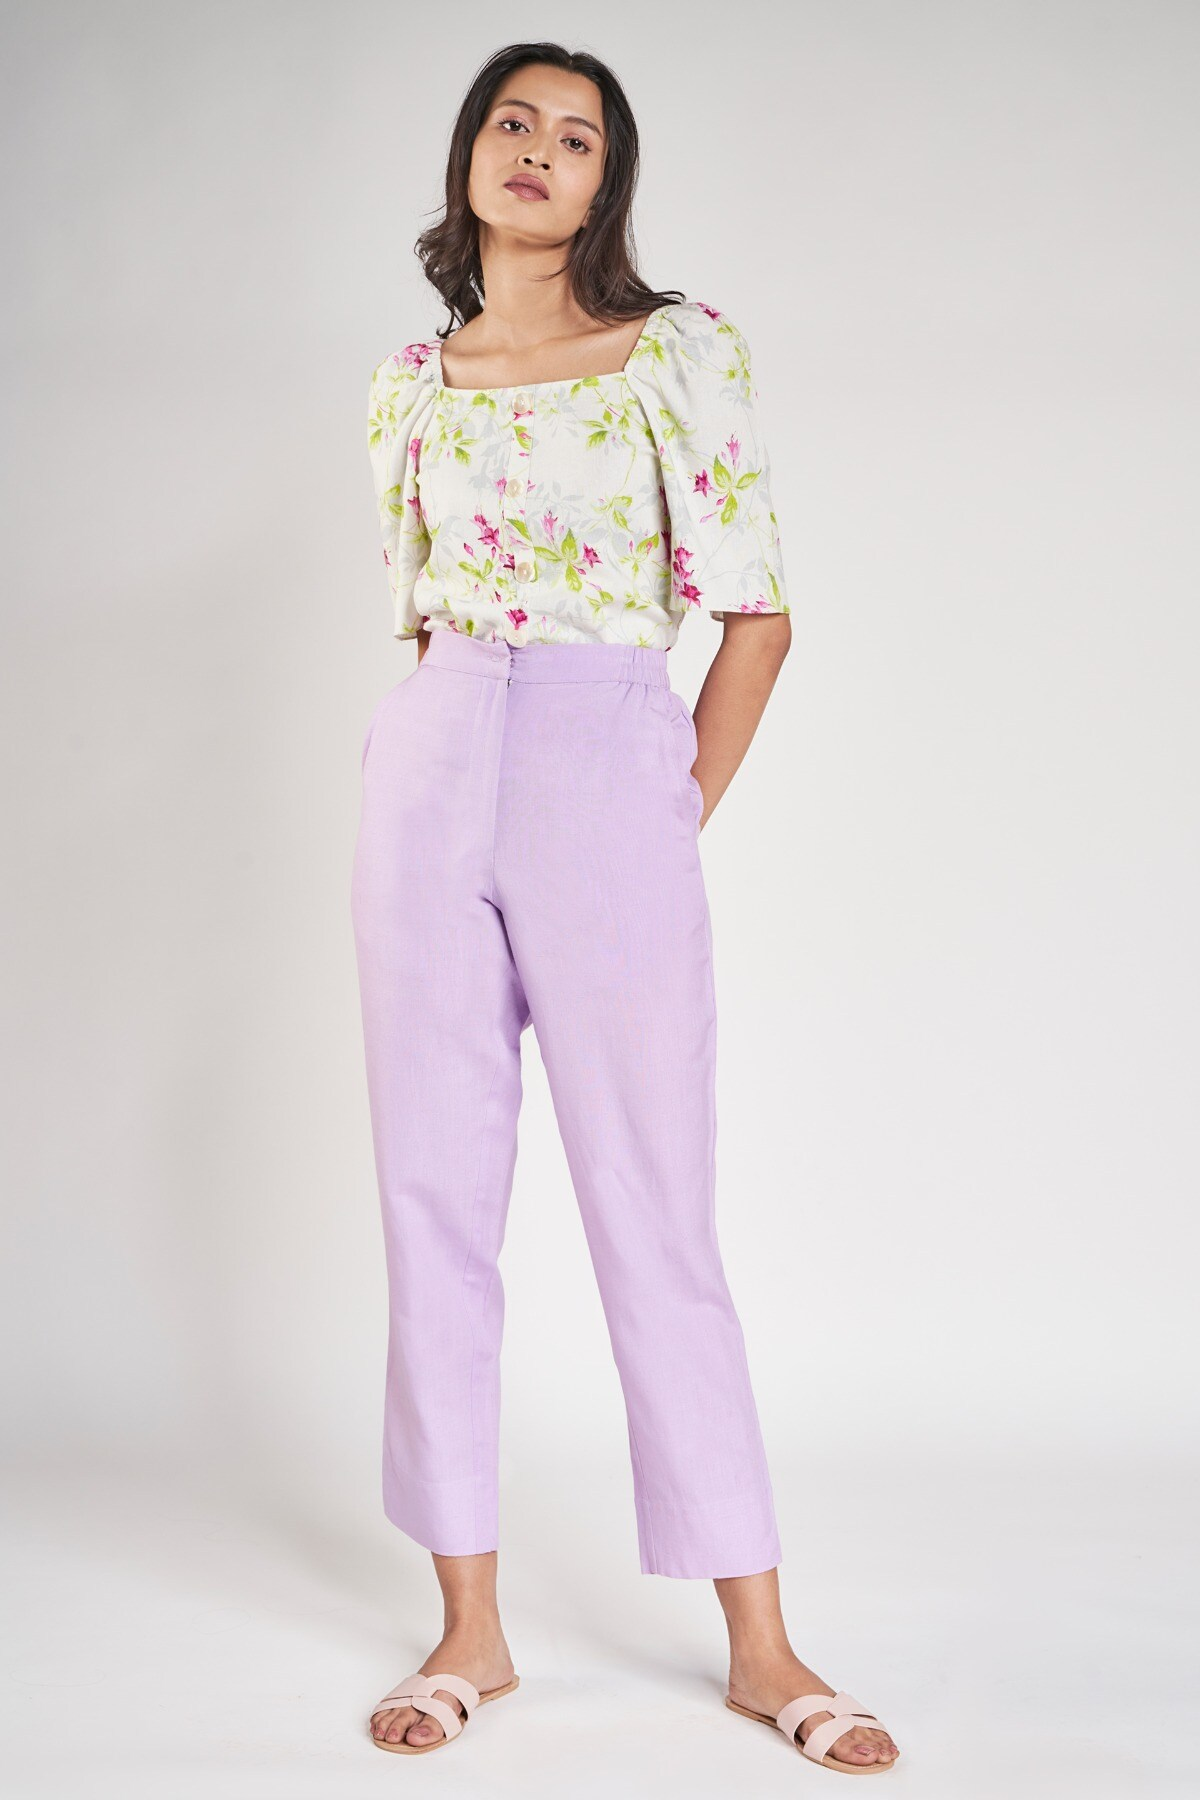 AND   White Floral Printed A-Line Top